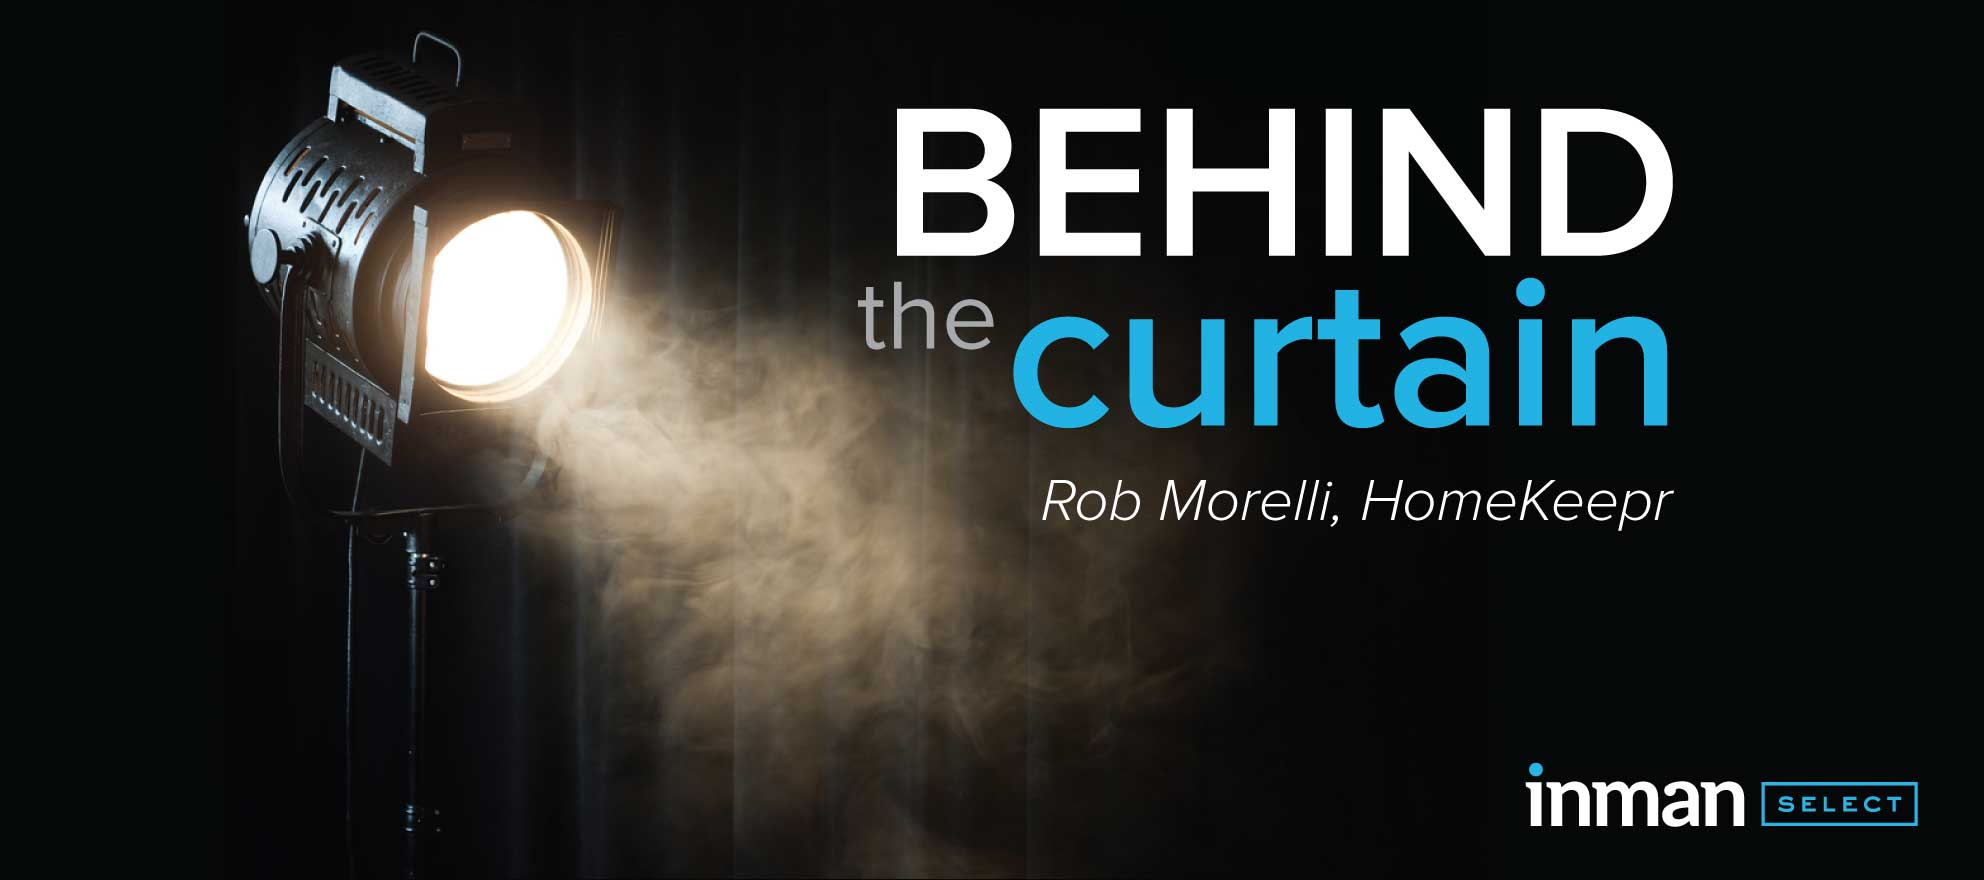 Rob Morelli on how vendor networks can enhance your business